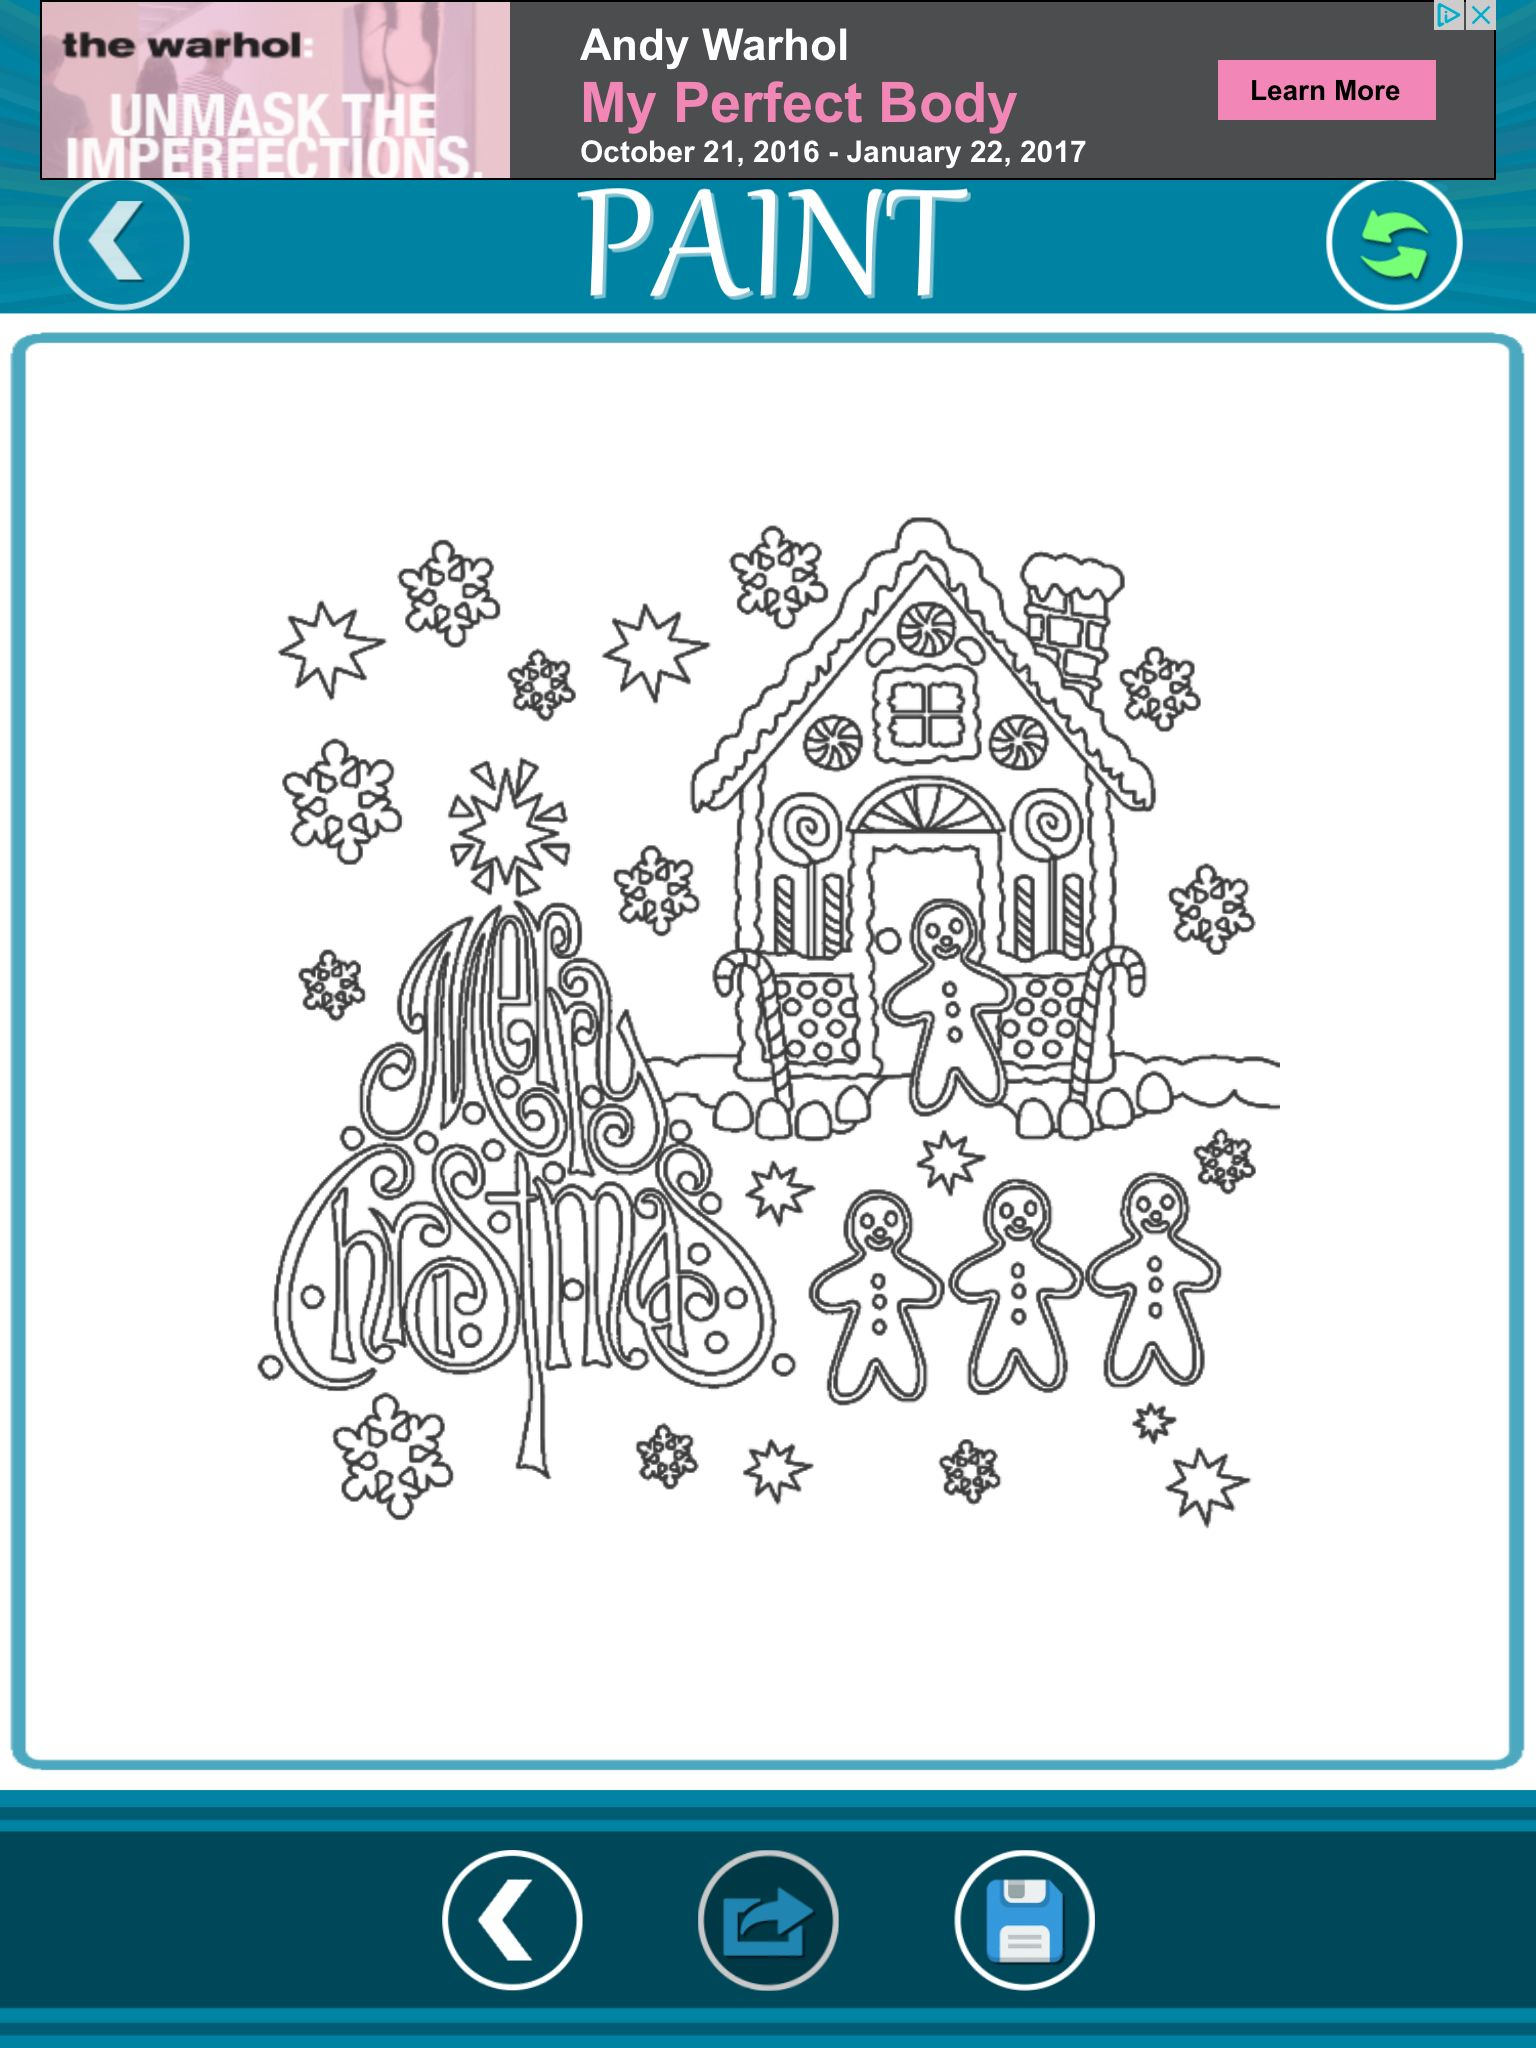 Loving Coloring App For AdultsYou could make your own arts using